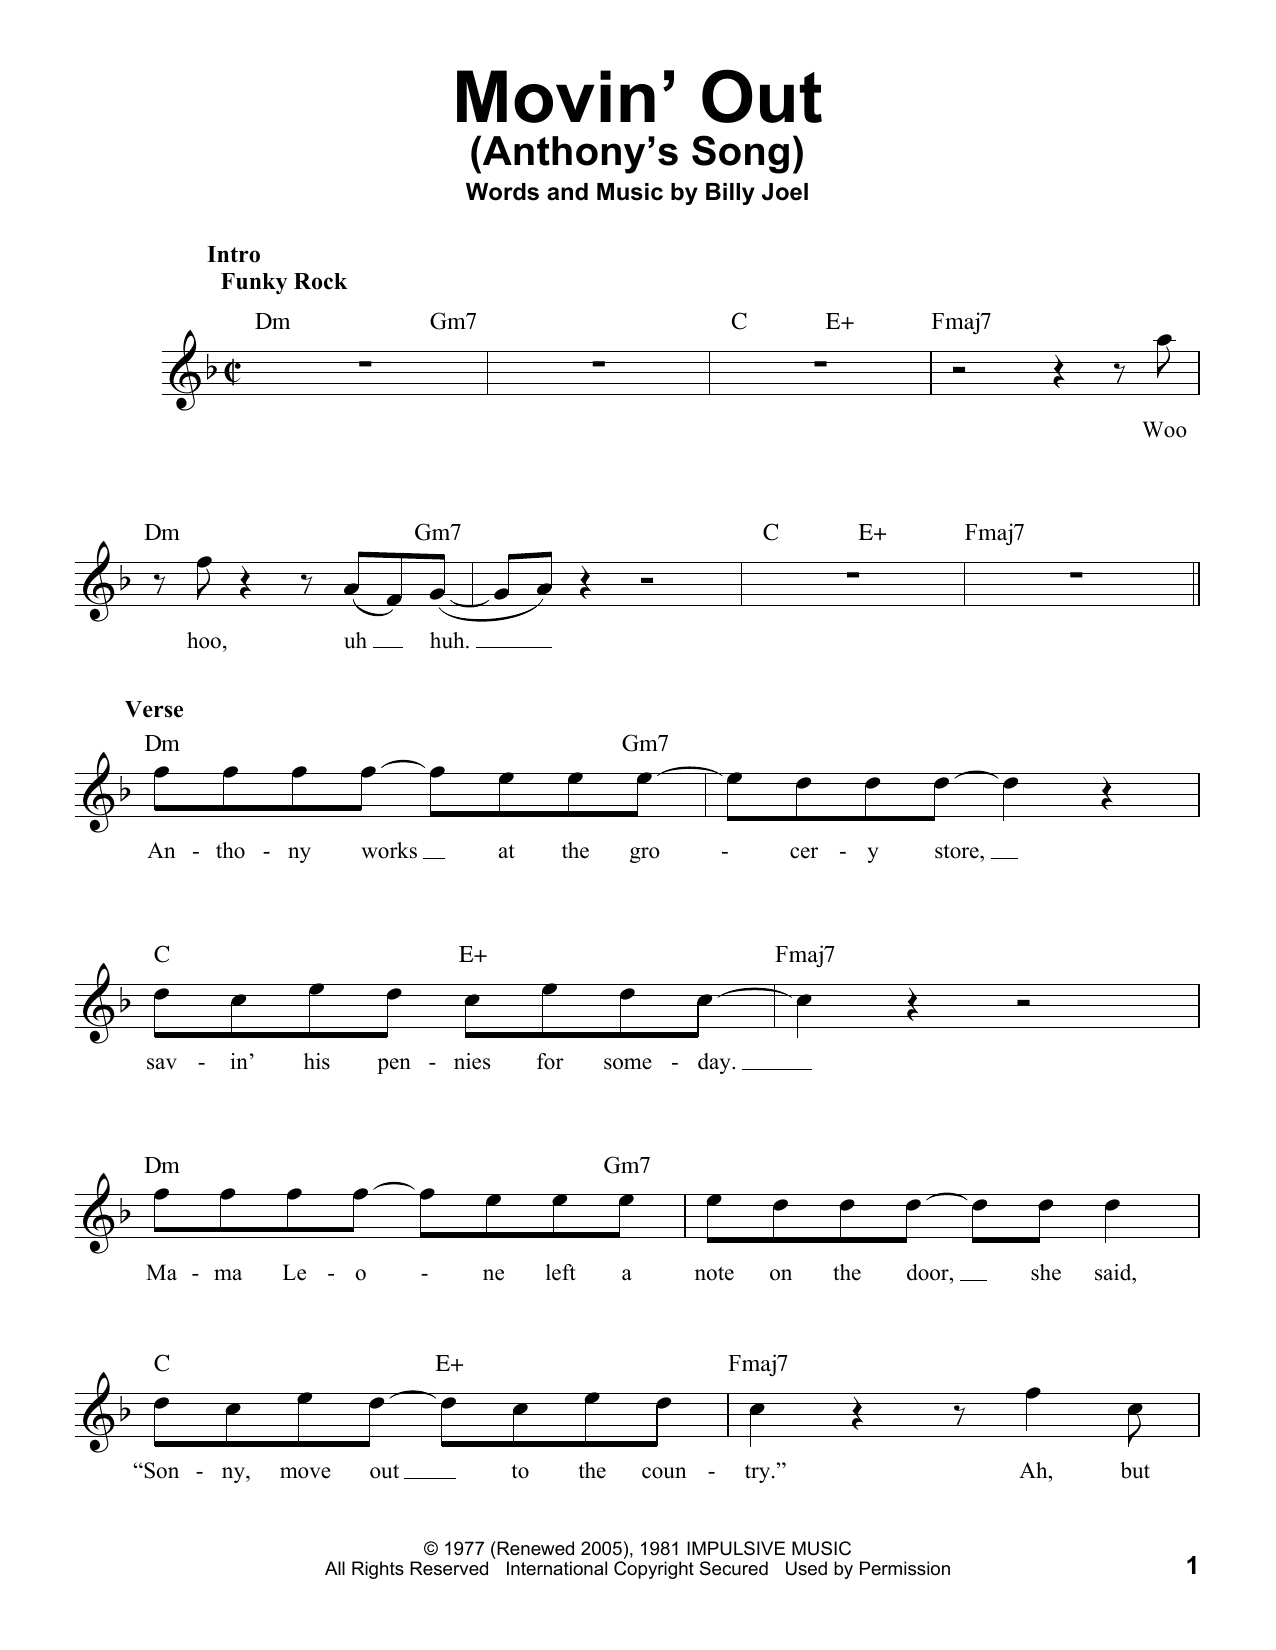 Movin' Out (Anthony's Song) Sheet Music